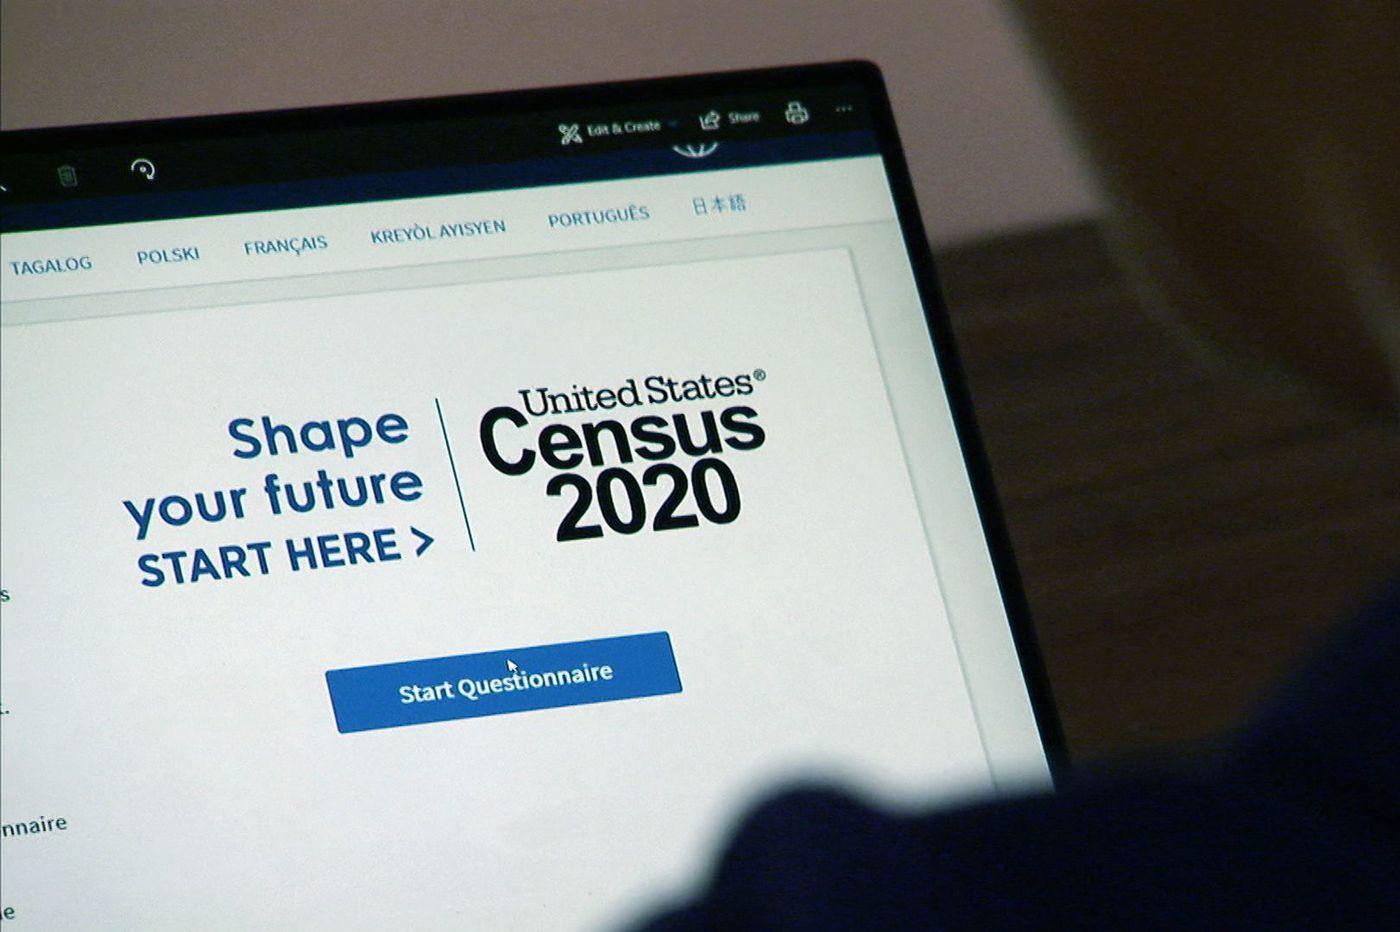 2020 Census has arrived. Here's what you need to know.